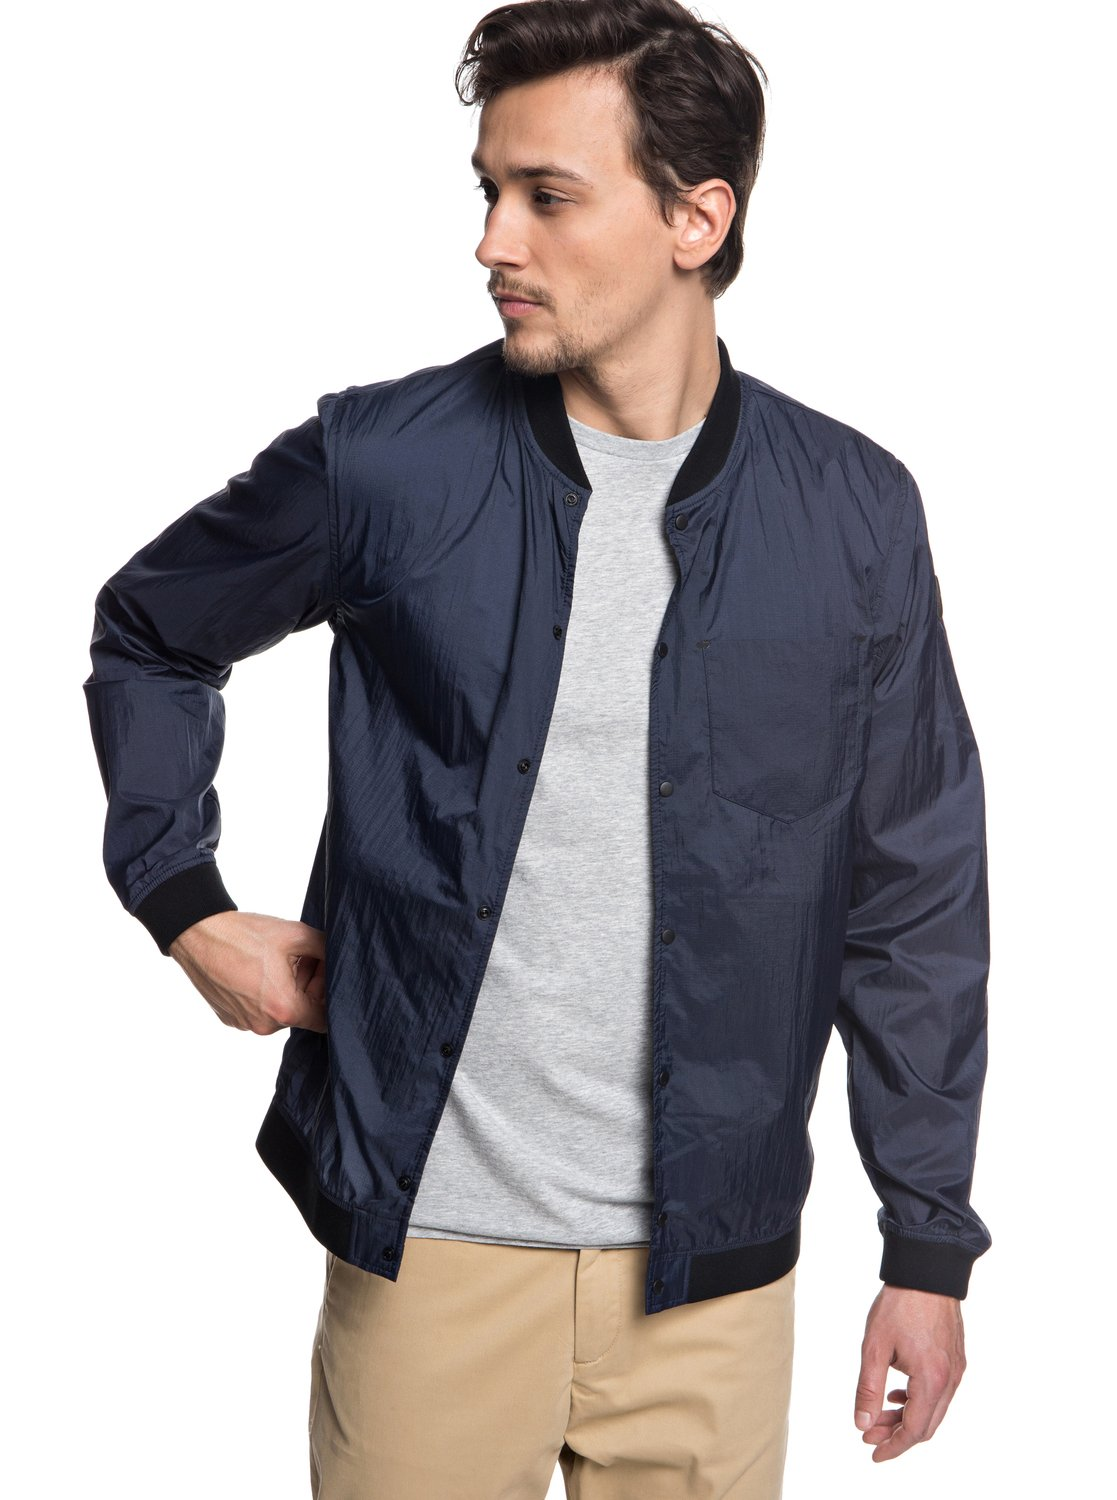 prevalent good latest collection Qpak Packable Water Resistant Bomber Jacket